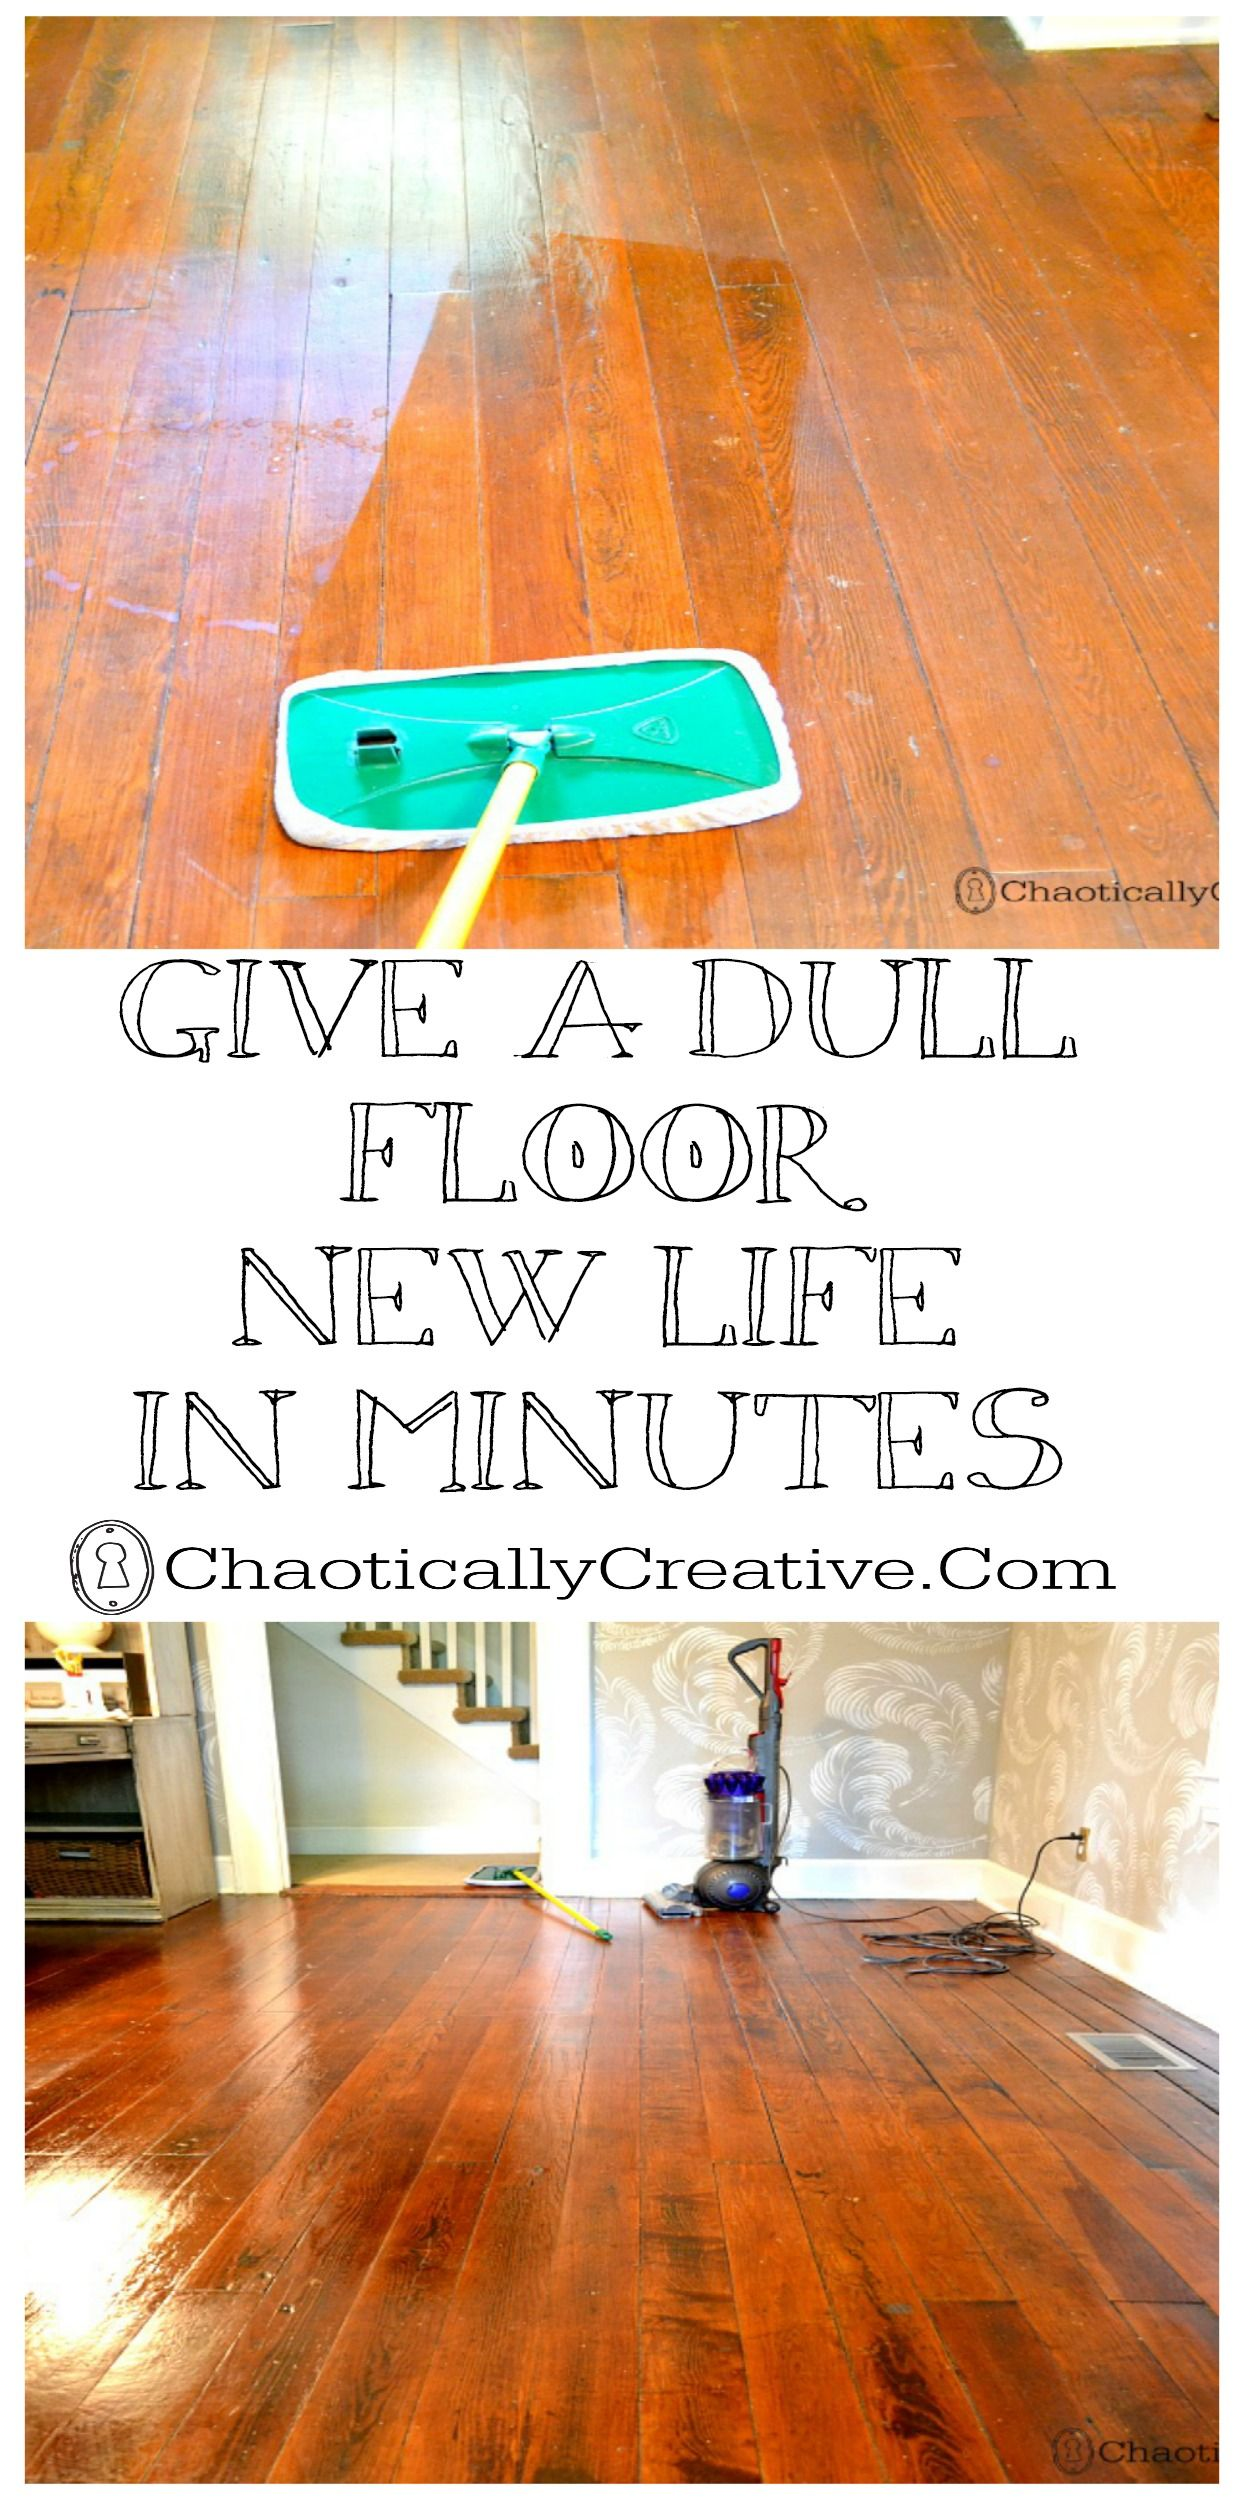 Shine Dull Floors In Minutes Chaotically Creative Cleaning